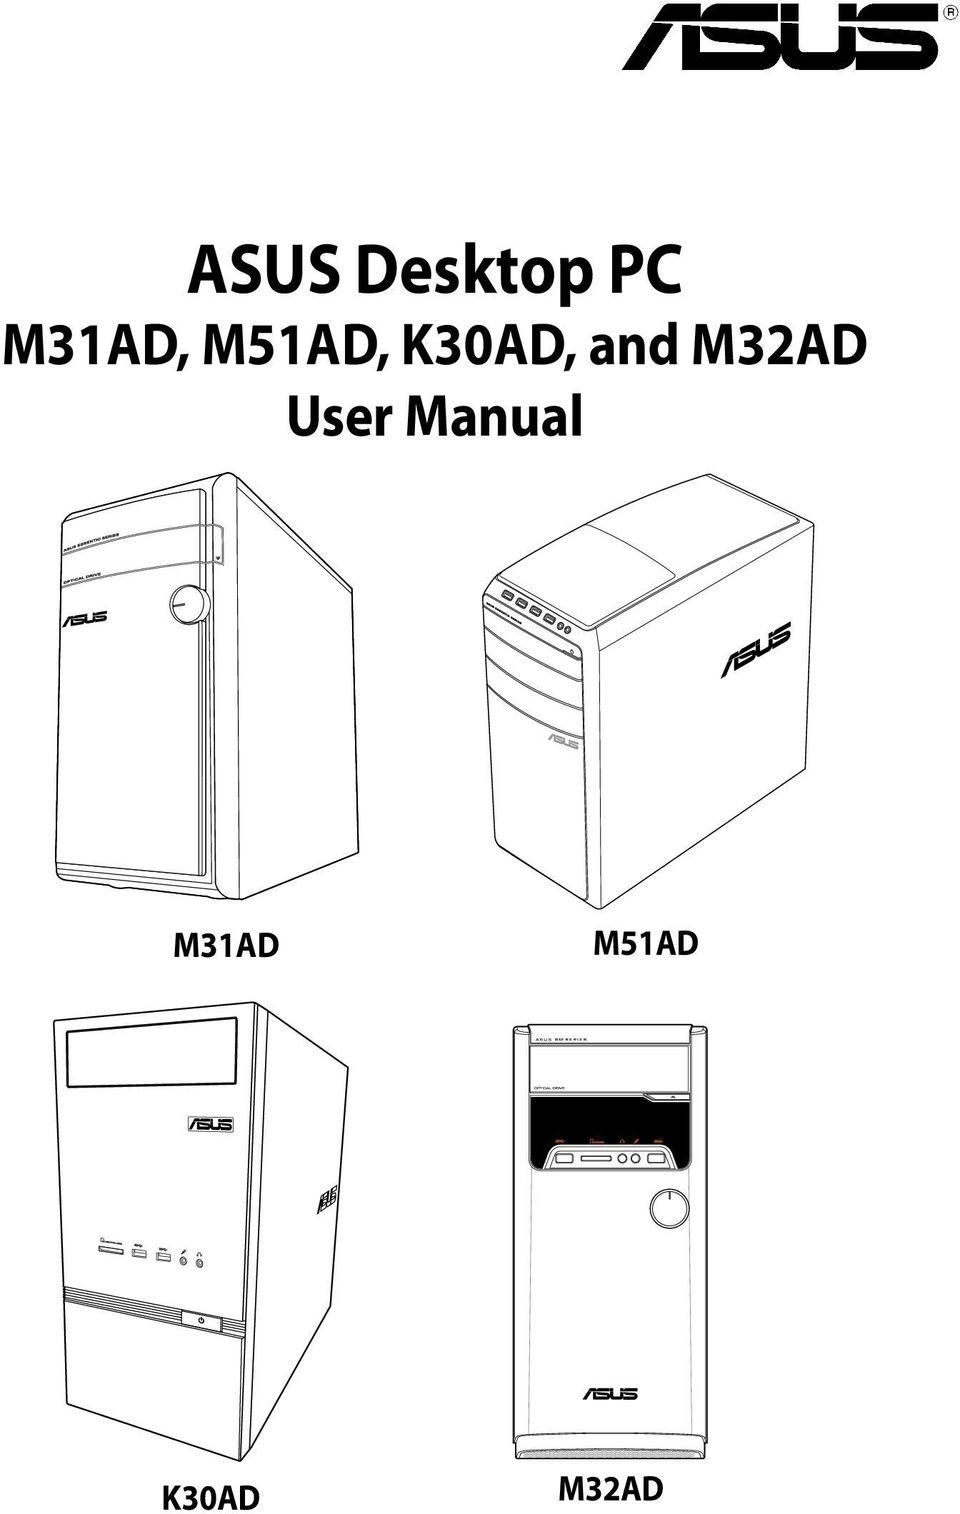 ASUS Desktop PC M31AD, M51AD, K30AD, and M32AD User Manual